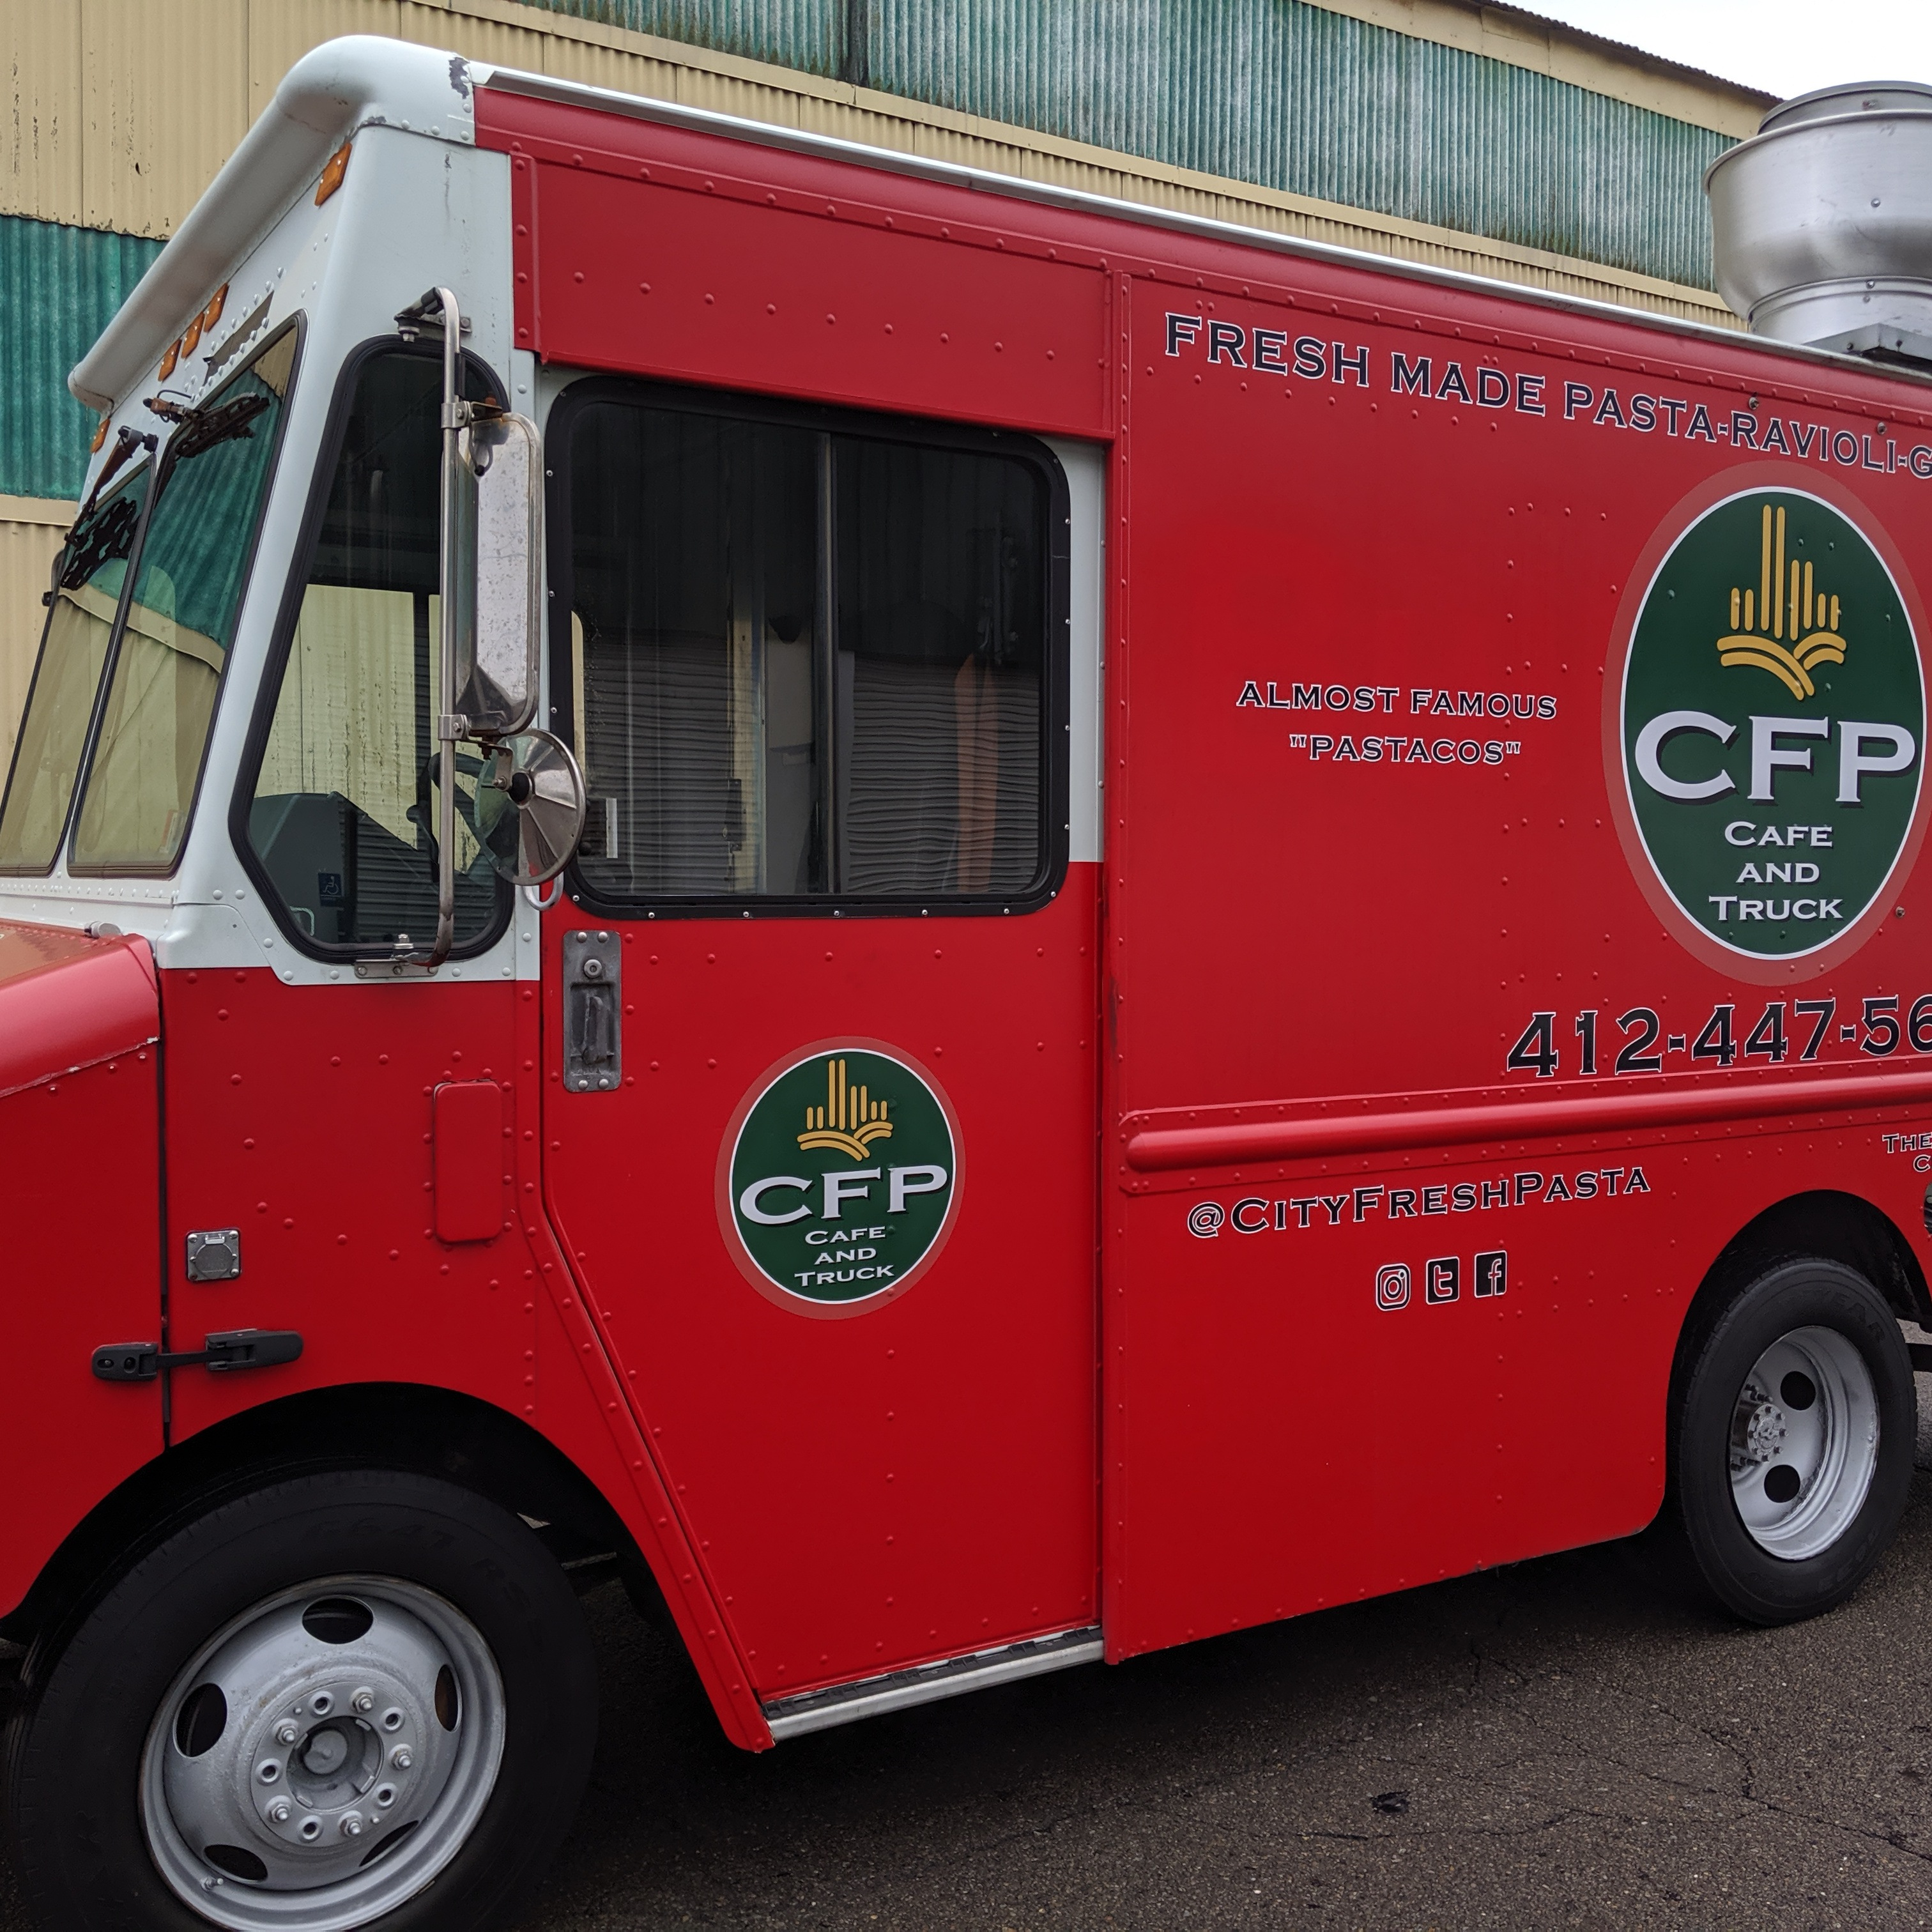 CFP CAFE TRUCK food truck profile image